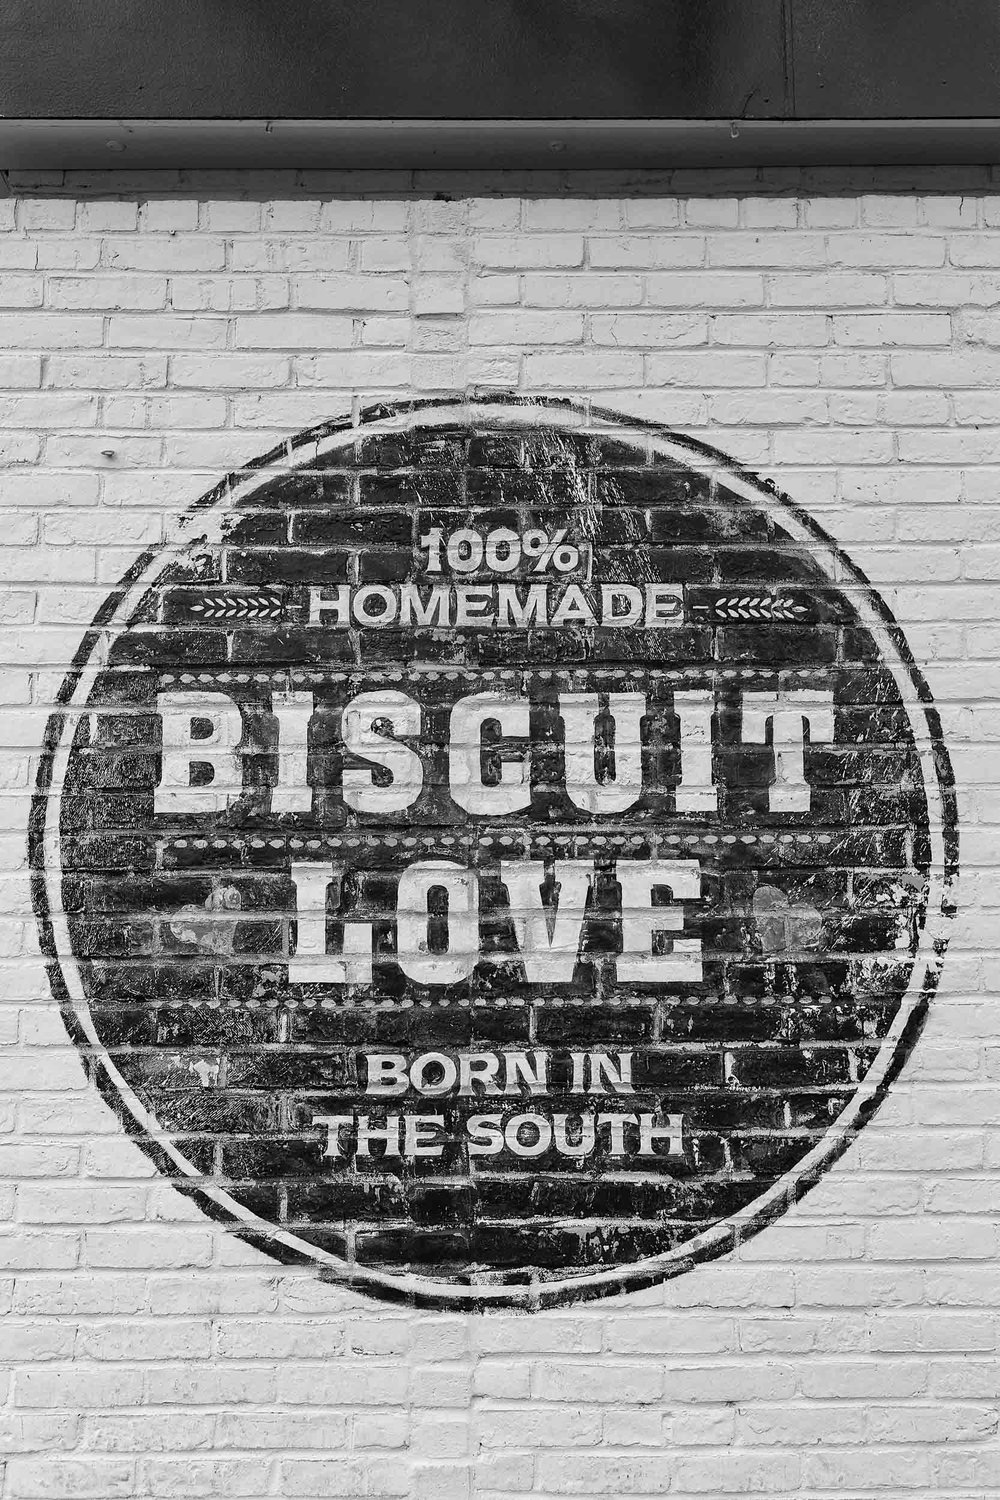 Biscuit Love - born in the South and 100% homemade!